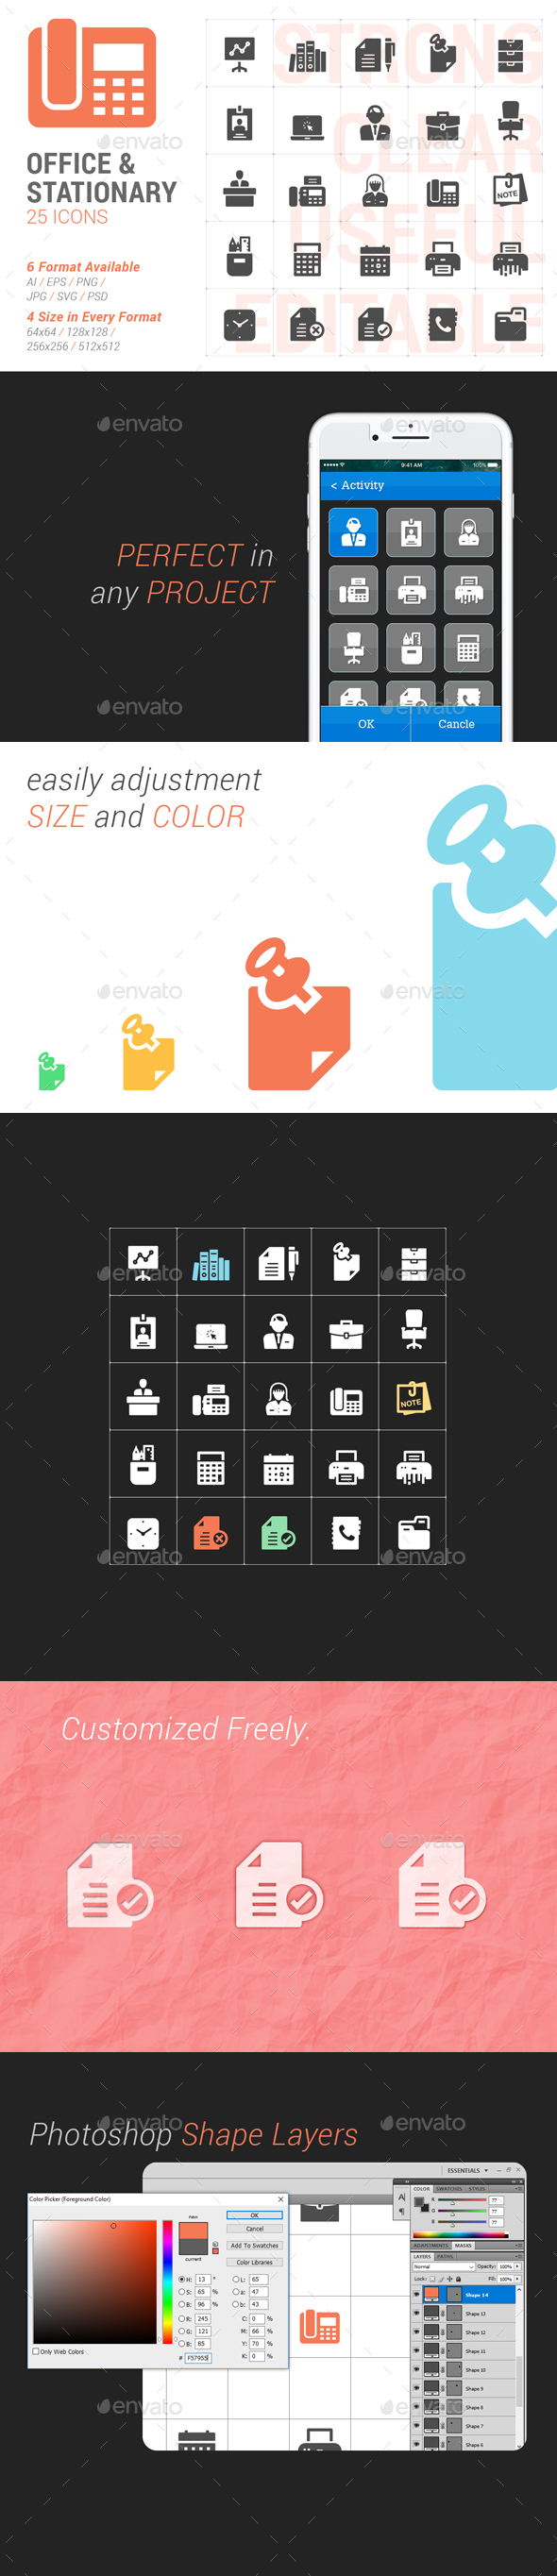 Office & Stationary Filled Icon - Icons